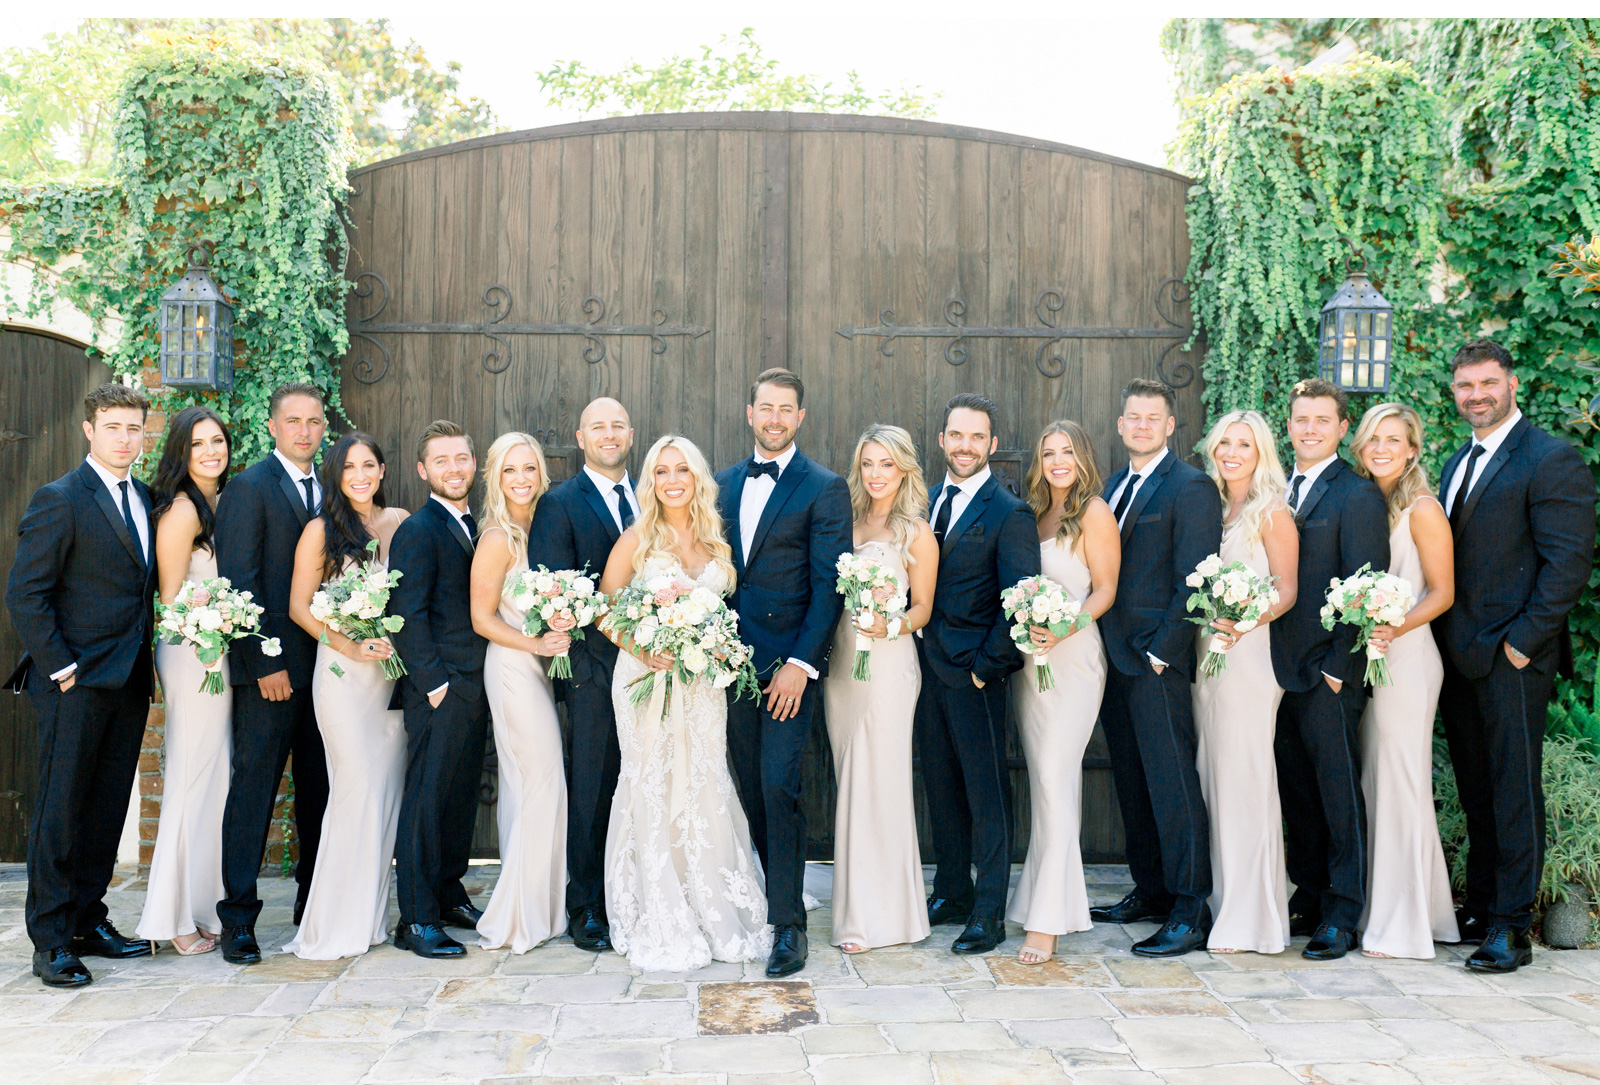 Malibu-Rocky-Oaks-Photographer-Malibu-Wedding-Style-Me-Pretty-Southern-California-Wedding-Venues-Natalie-Schutt-Photography_08.jpg